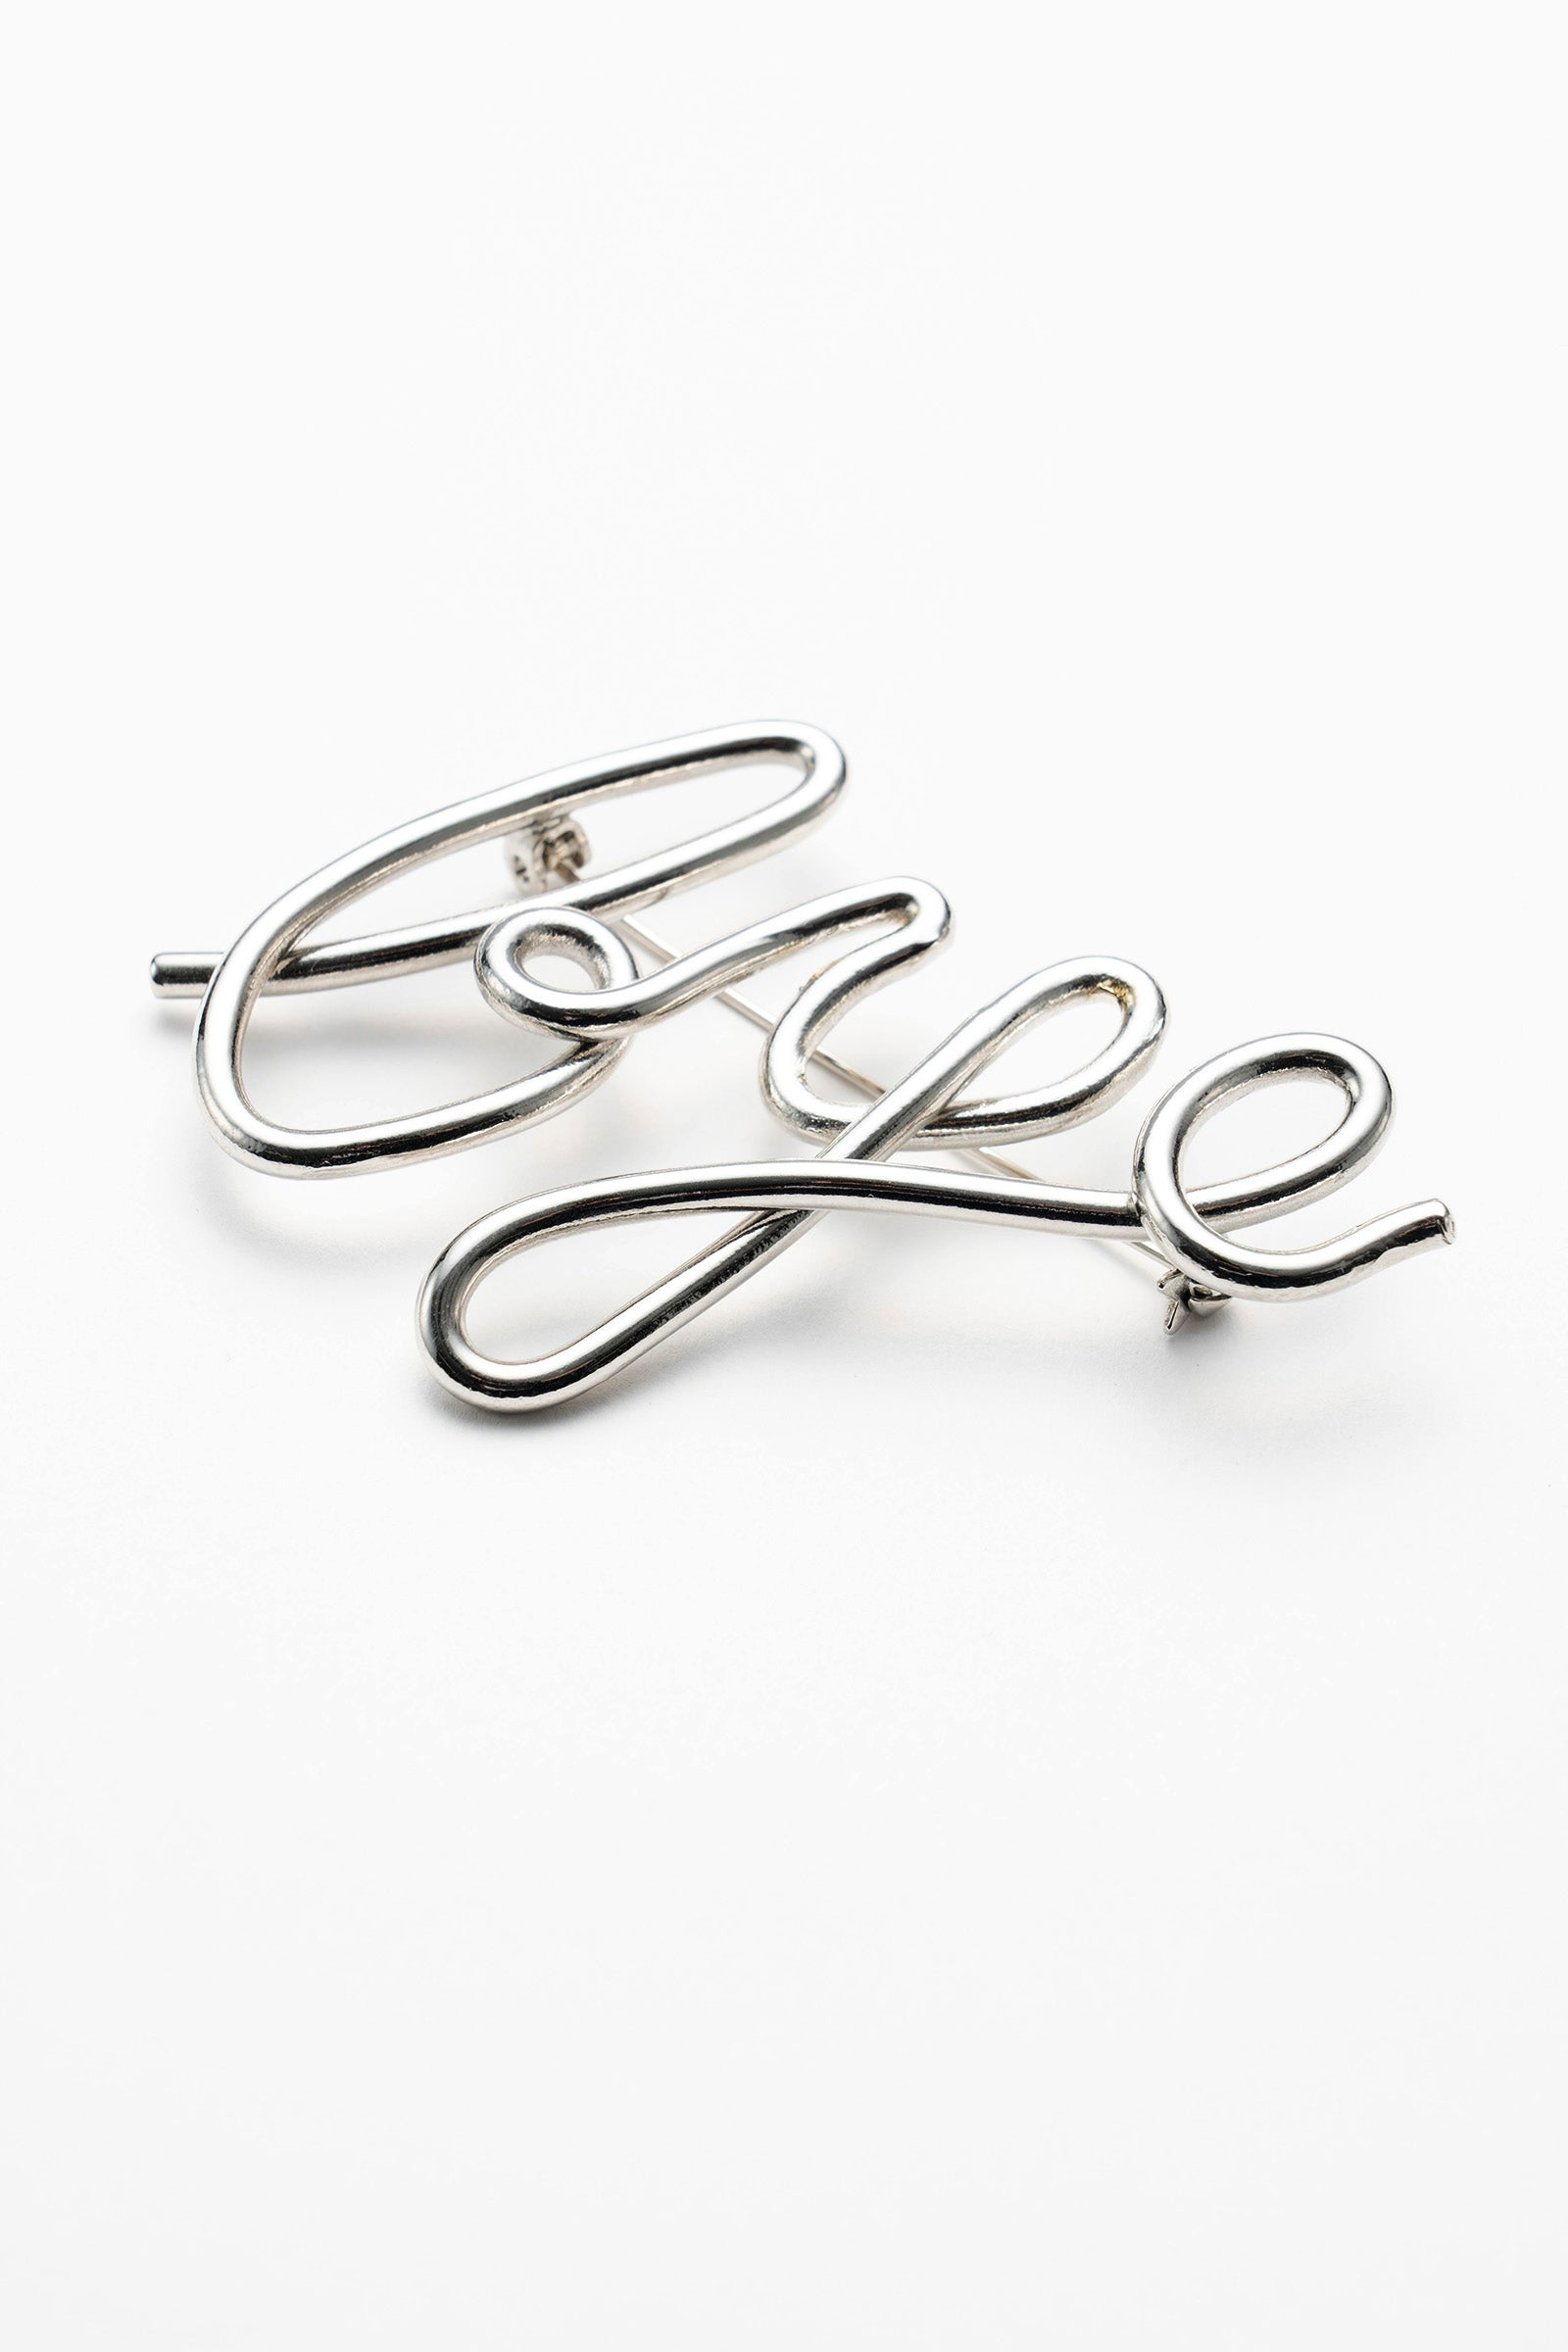 MURRAL bye brooch (silver)